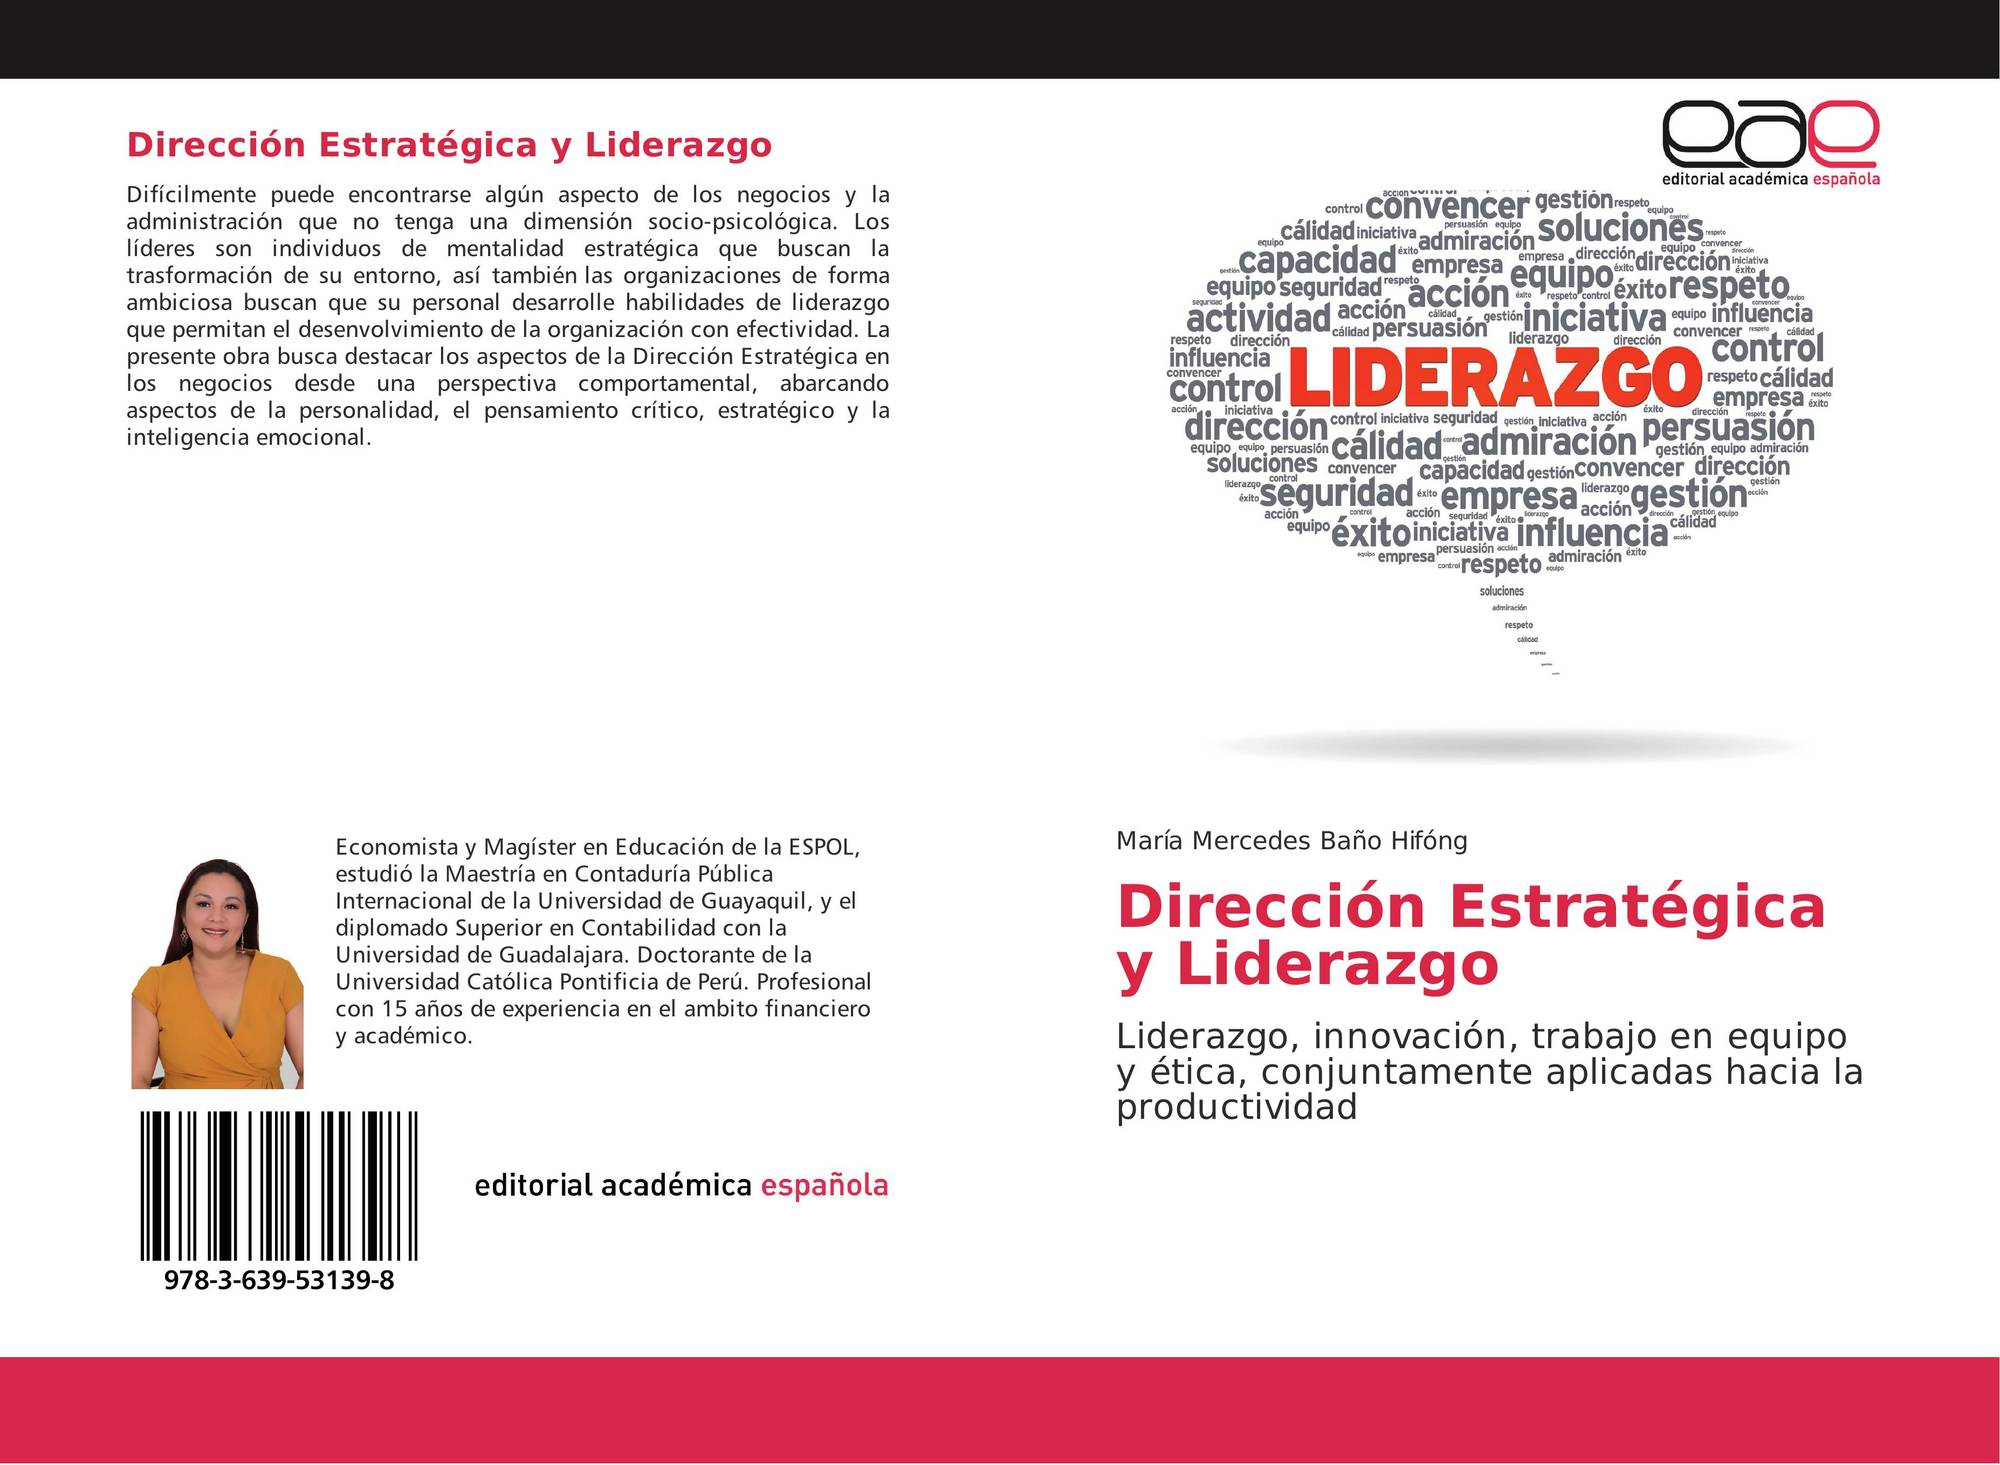 Preguntas frecuentes aviso de privacidad gale, part cengage learning, leading publisher aggregator providing educational content, tools, services other resources academic libraries